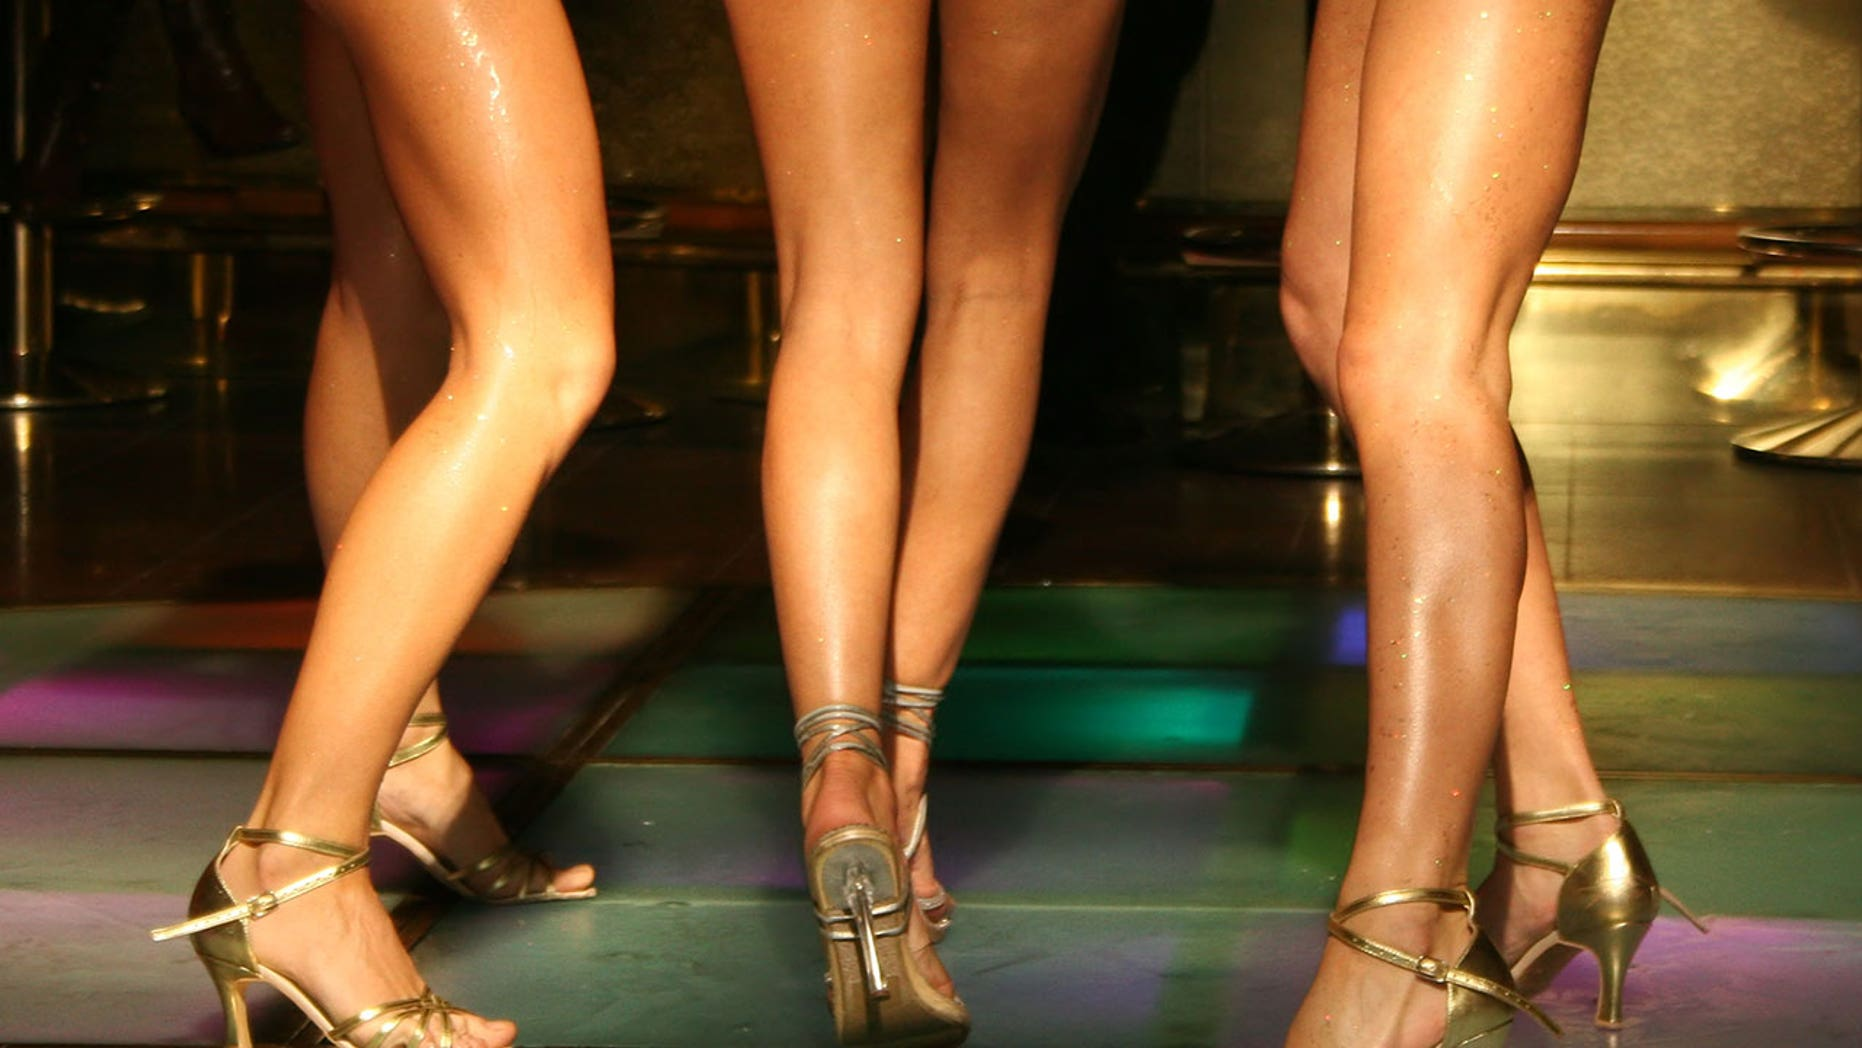 A Florida strip club is catching heat for turning away a male bartenting applicant.